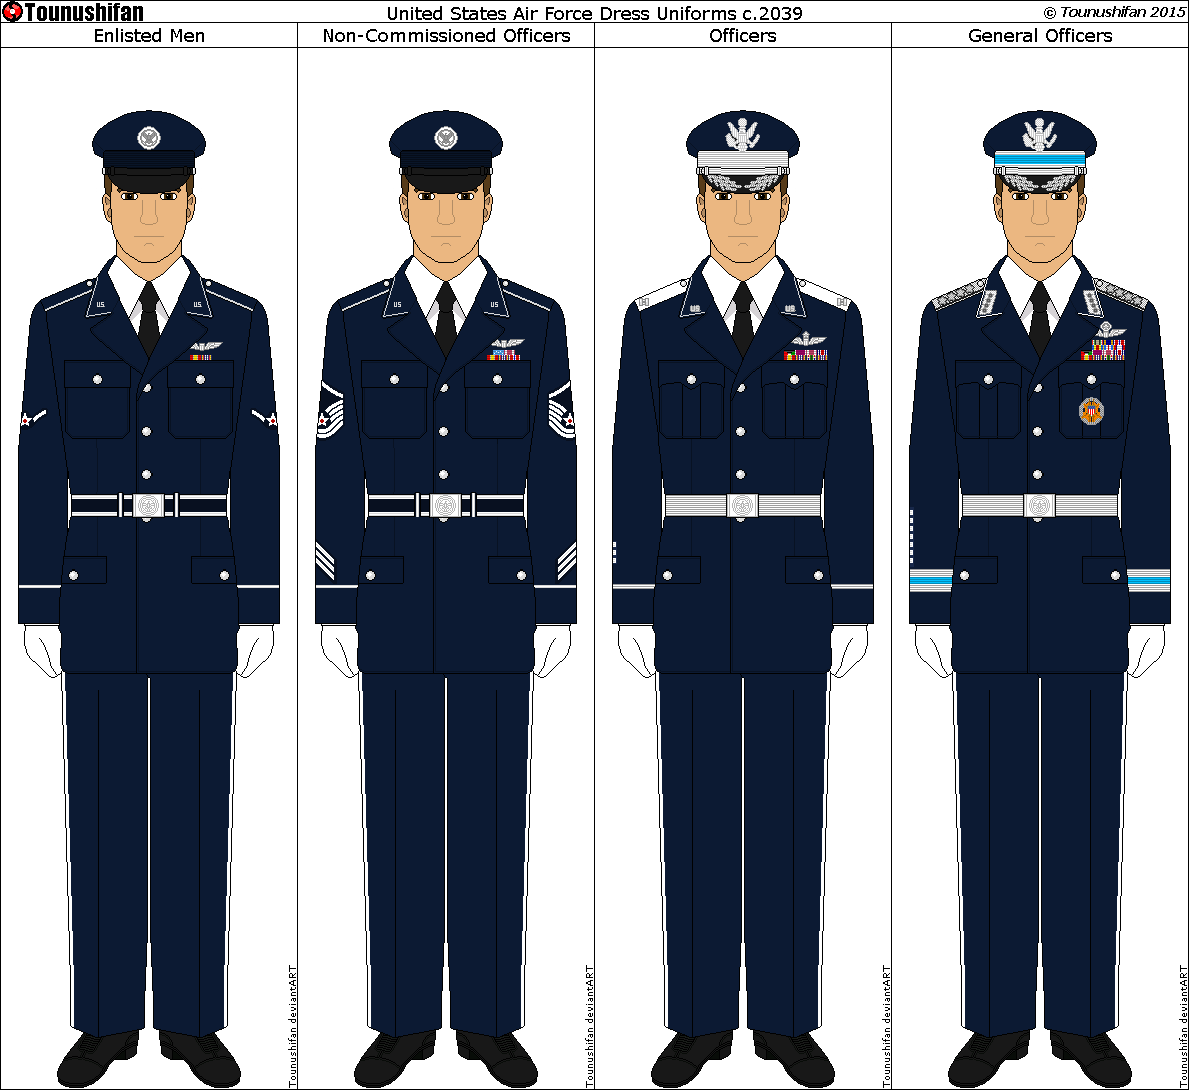 Images of Air Force Dress Uniform - Fashion Trends and Models